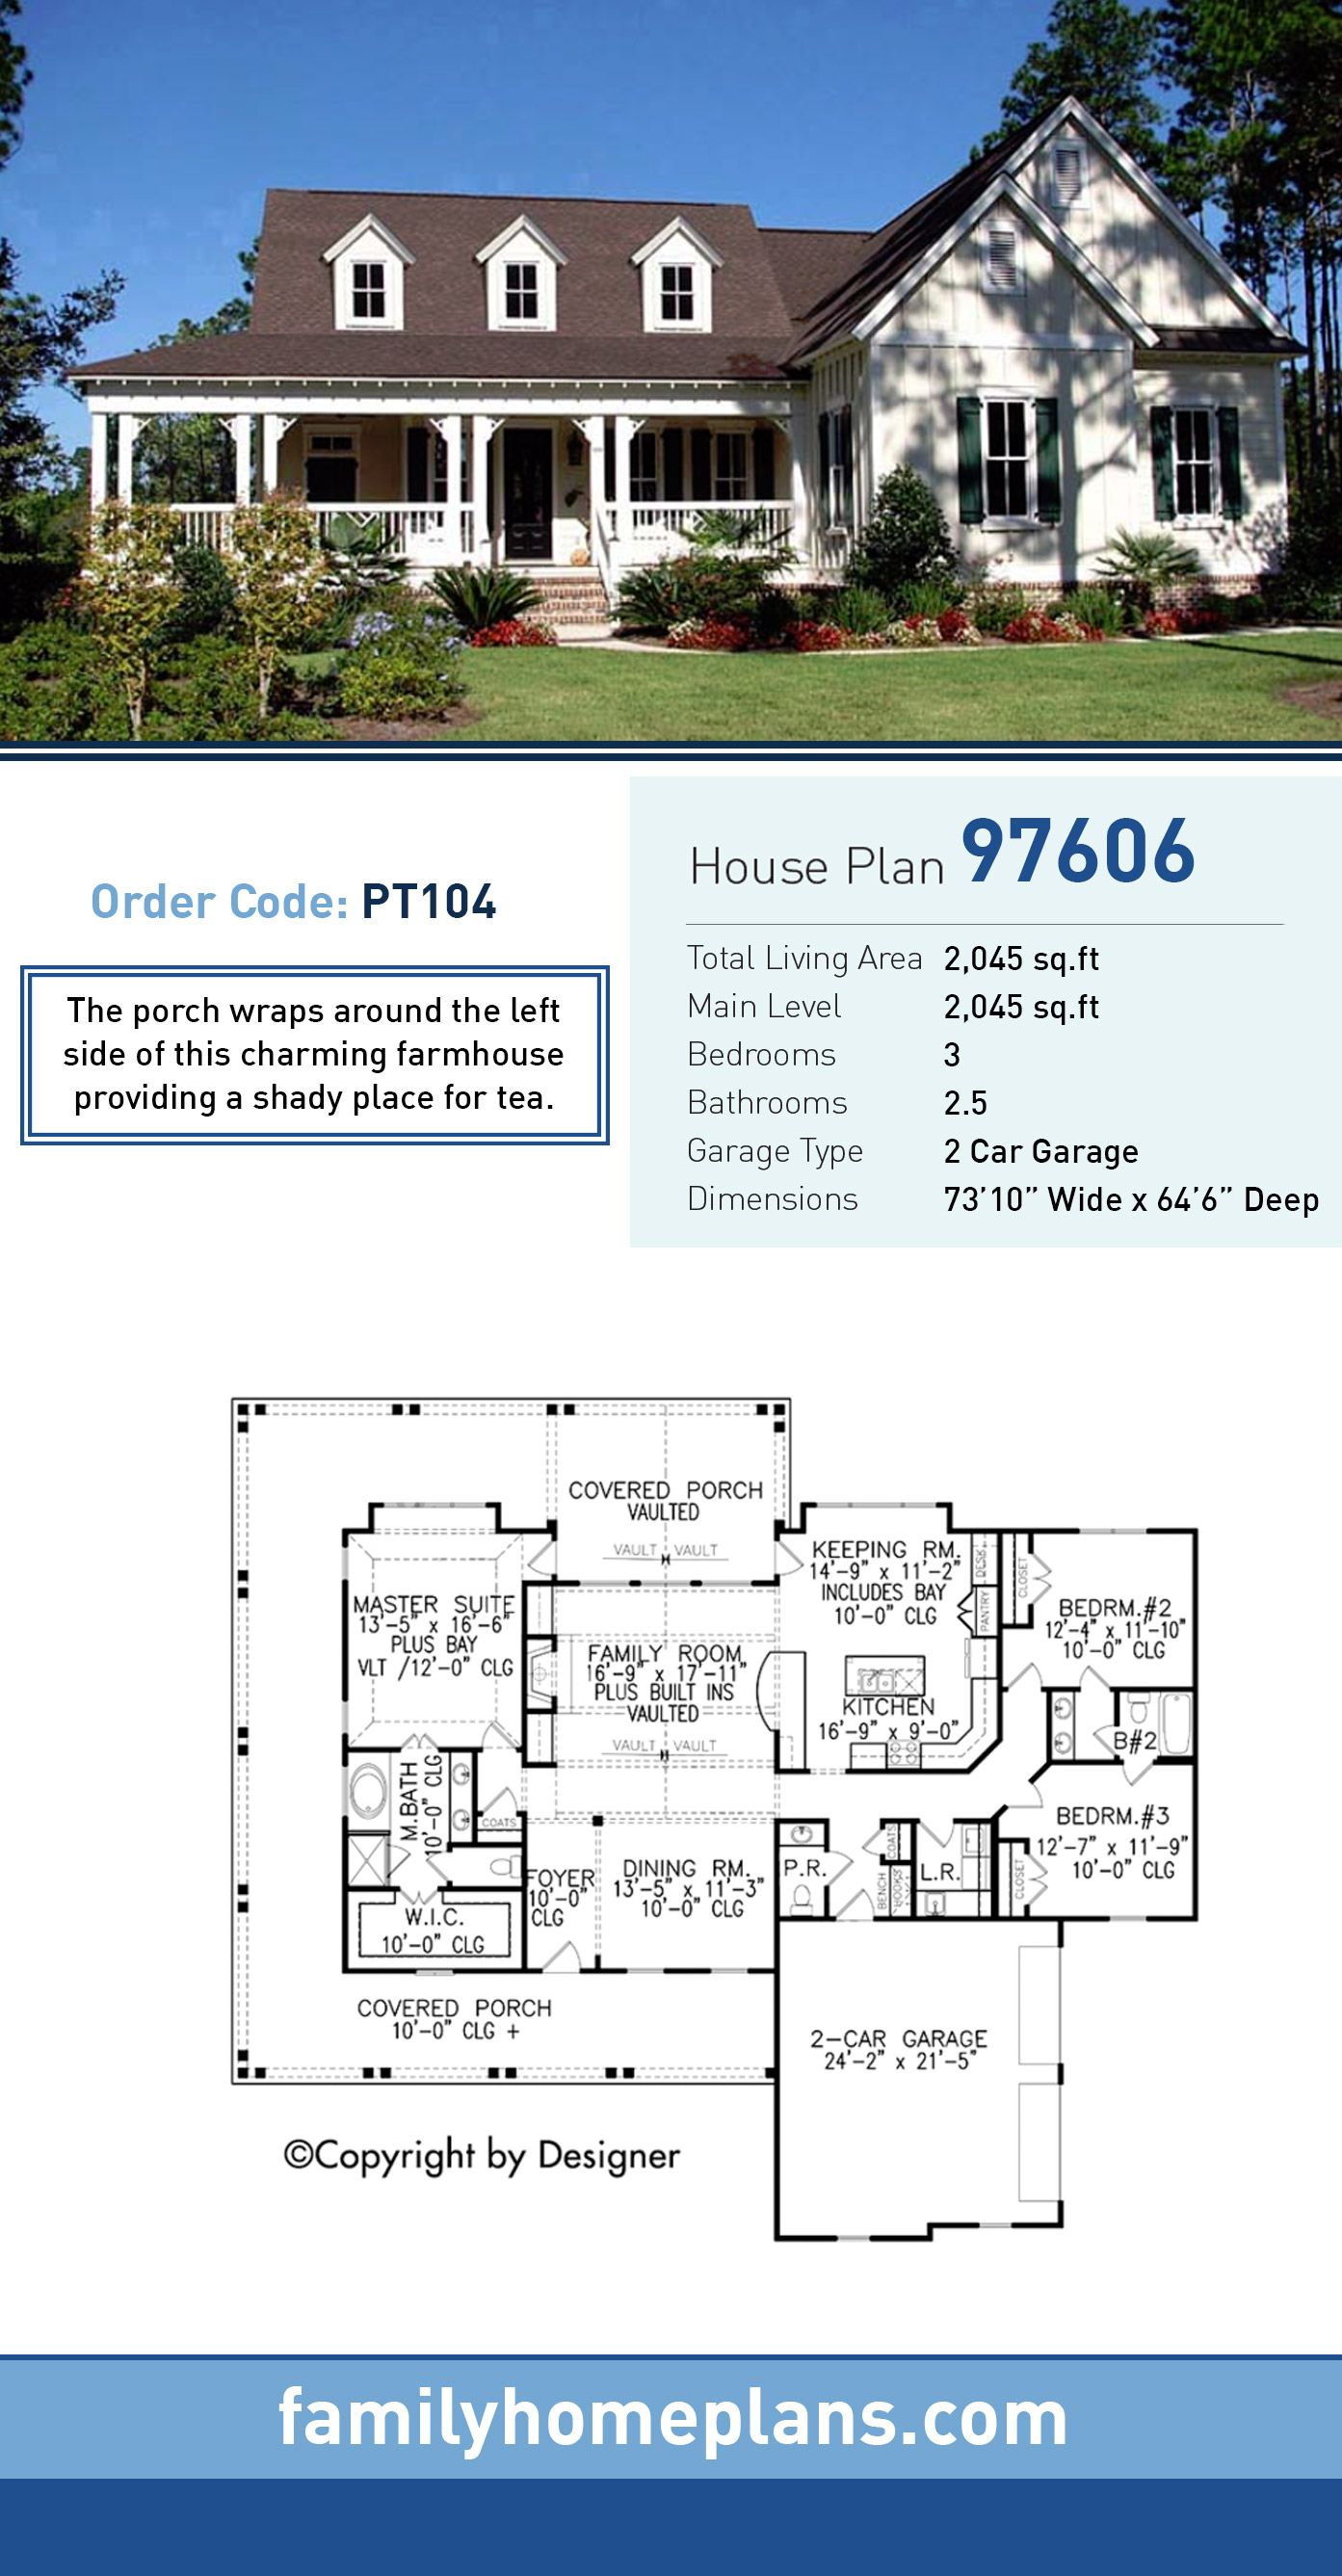 Traditional Style House Plan 97606 With 3 Bed 3 Bath 2 Car Garage Country Style House Plans House Plans Farmhouse Dream House Plans